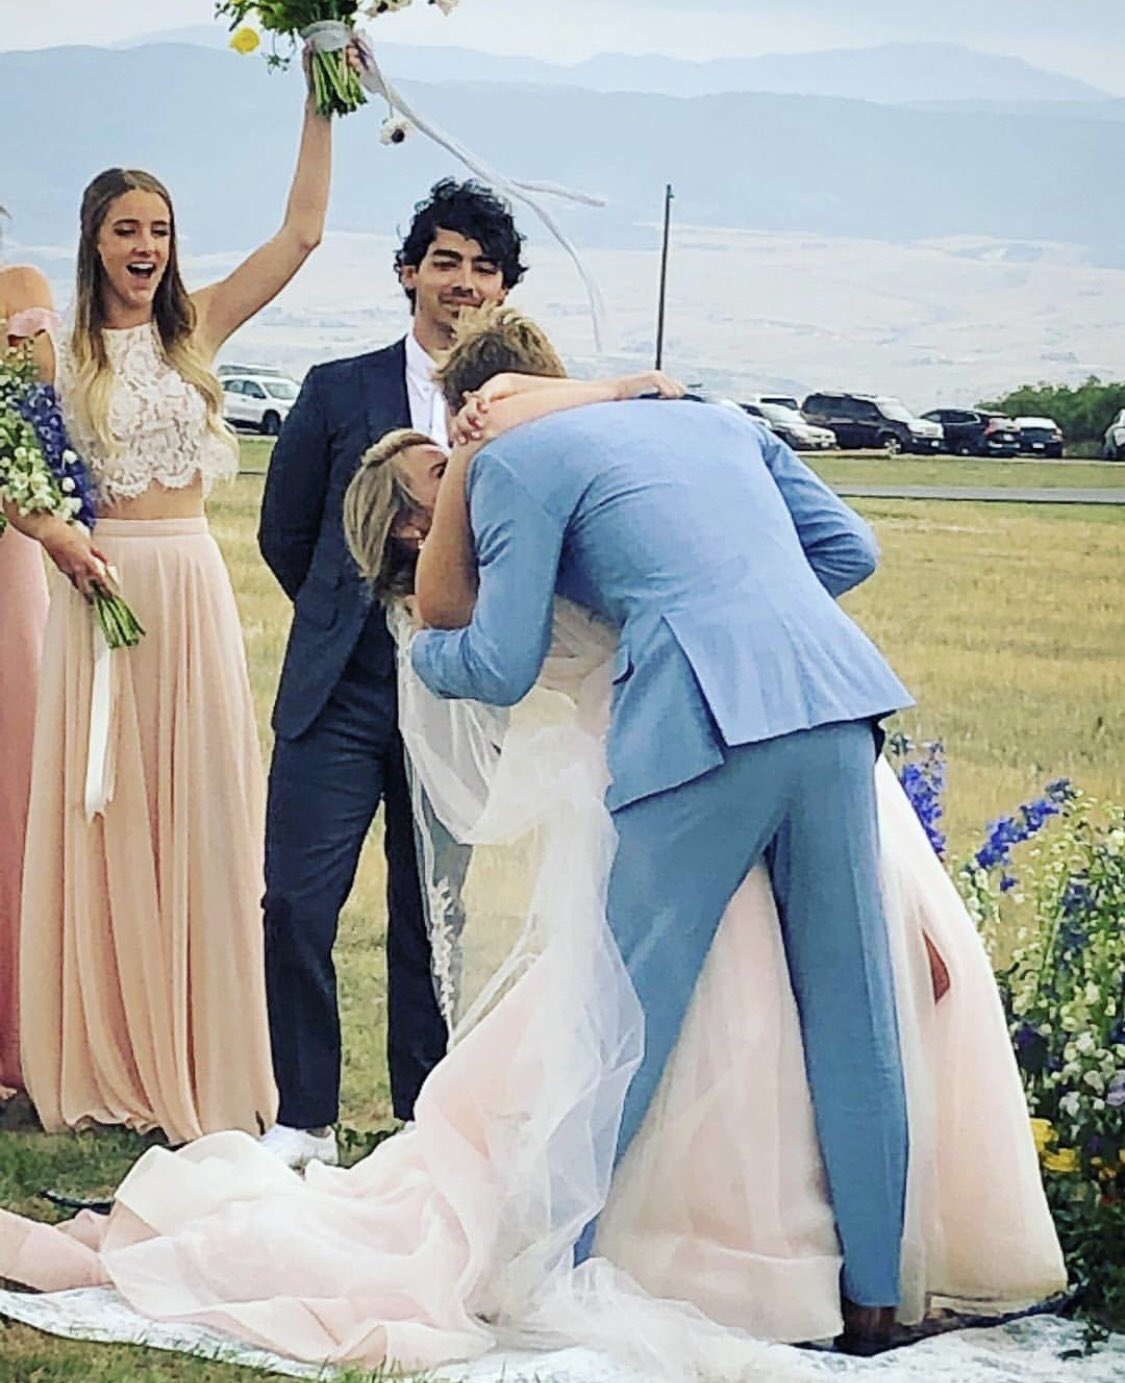 Honored to marry my friends today. Love you both. Couldn't be happier for you two. ���� �� https://t.co/3xc13Ct54z